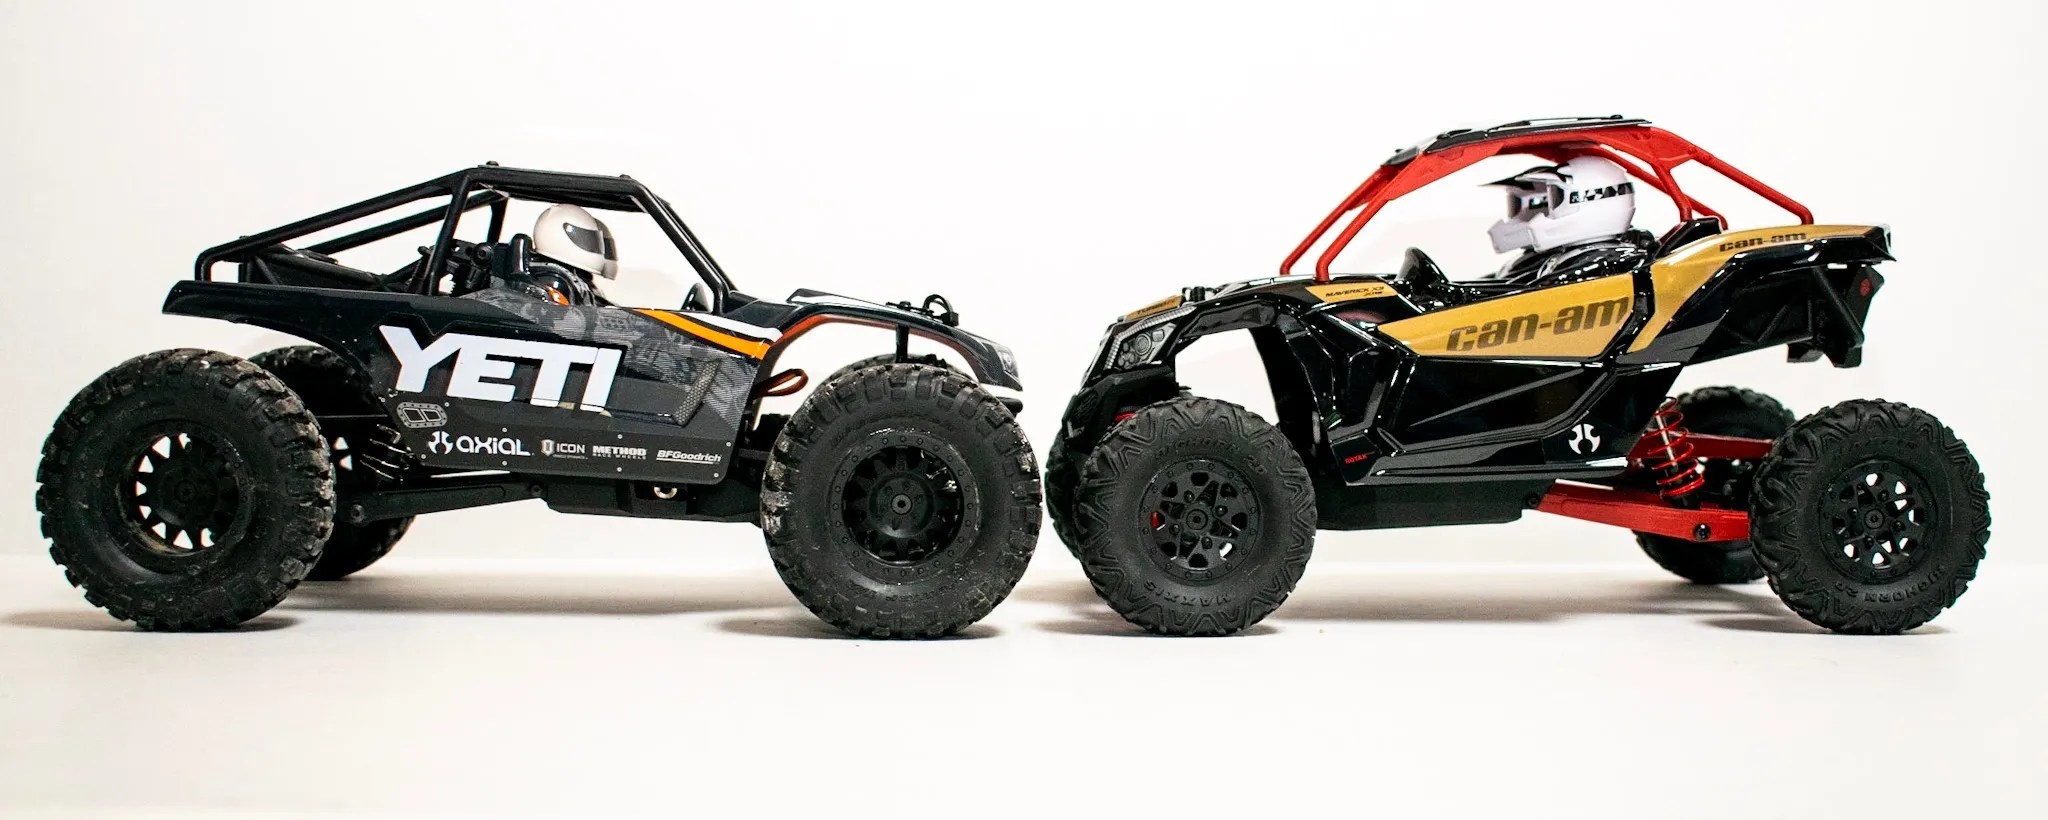 Axial Yeti Jr. Can-Am Maverick X3 - Comparison